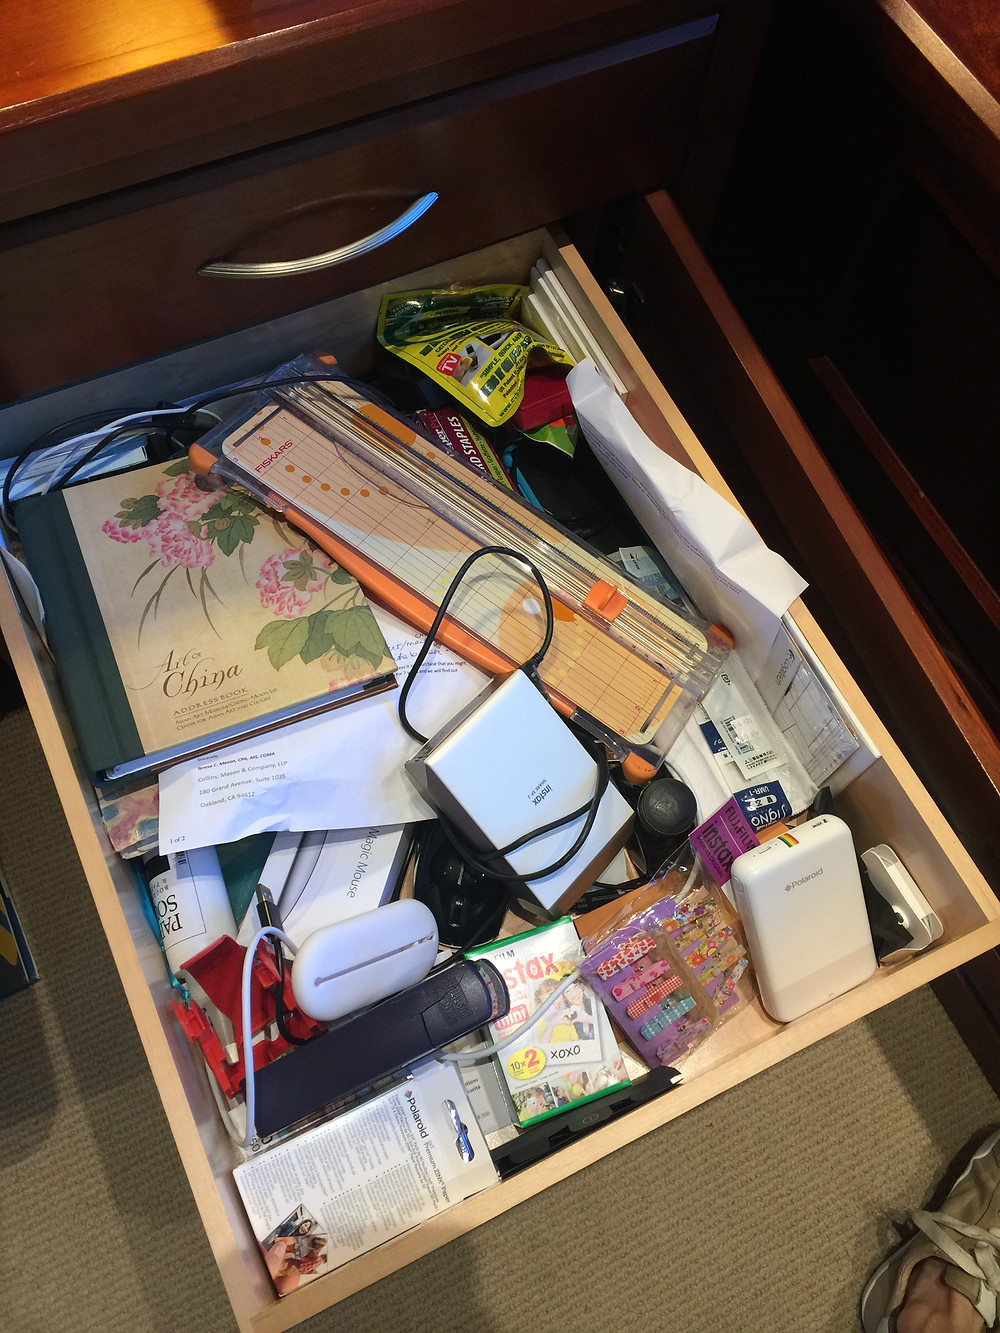 OLWH: Taking Down the Junk Drawer: 3 Tips - photo of a messy junk drawer with assorted items piled on top of one another